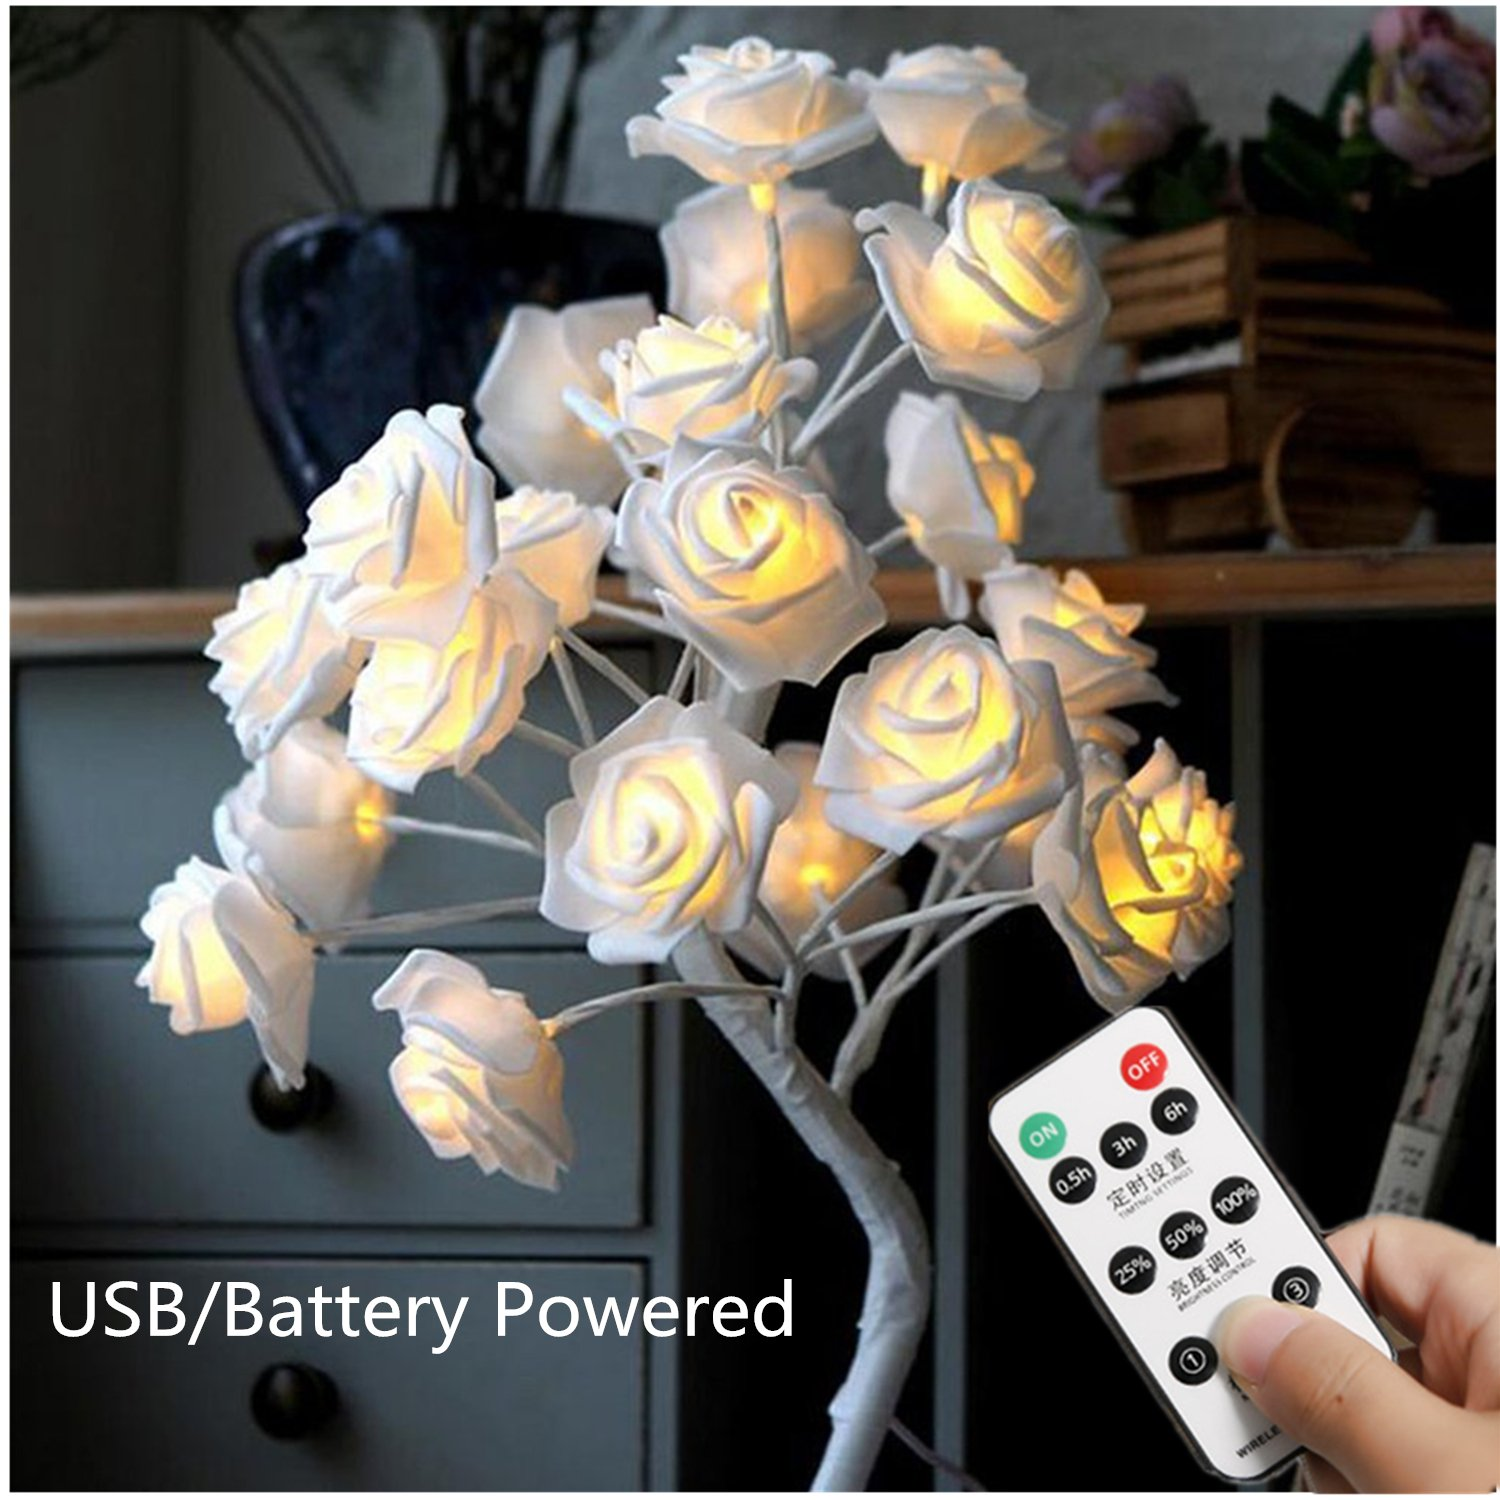 White Rose Table Lamp with Remote,USB/Battery Powered Flower Desk Lamp,Wedding Decor Flower Tree Lights for Girl Bedroom Party Dinner Xmas with 24 Warm White LED Lights [3 Mode,Dimmable,Timer]